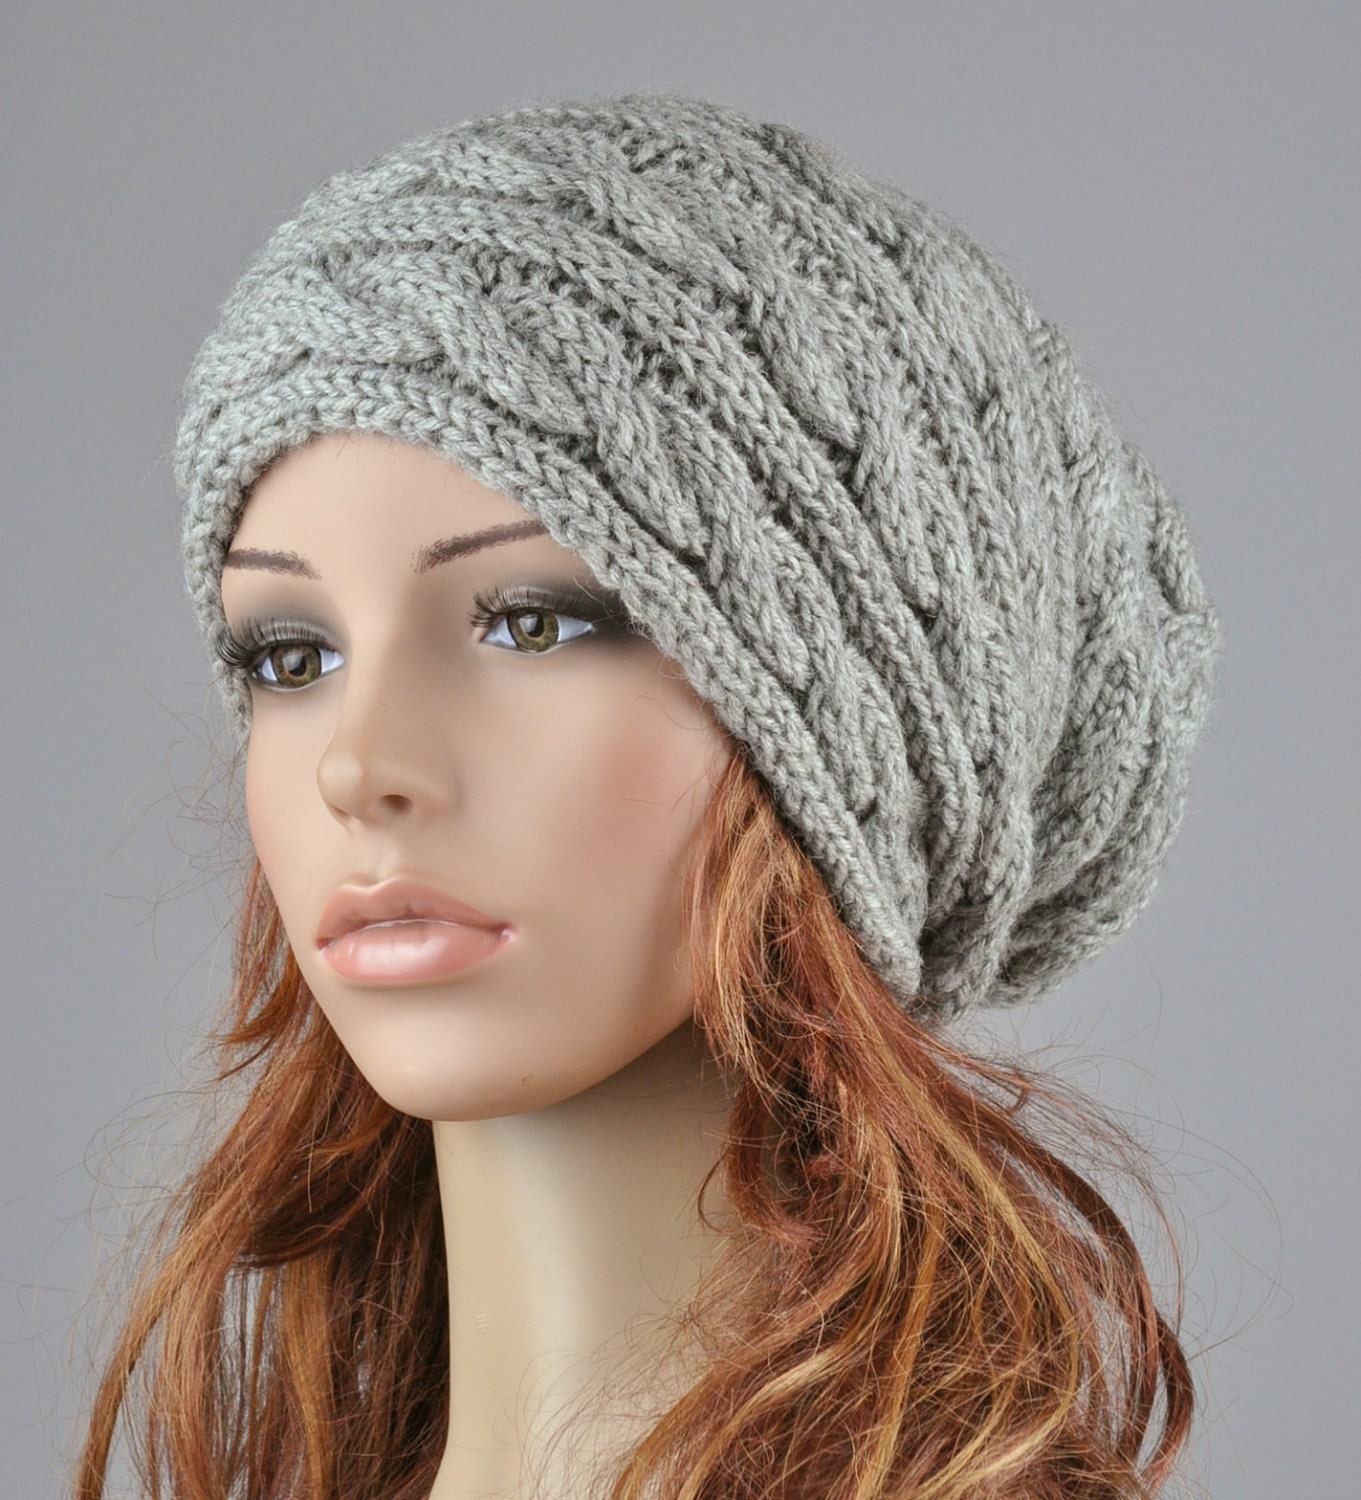 Hand knit hat Grey hat slouchy hat cable pattern hat